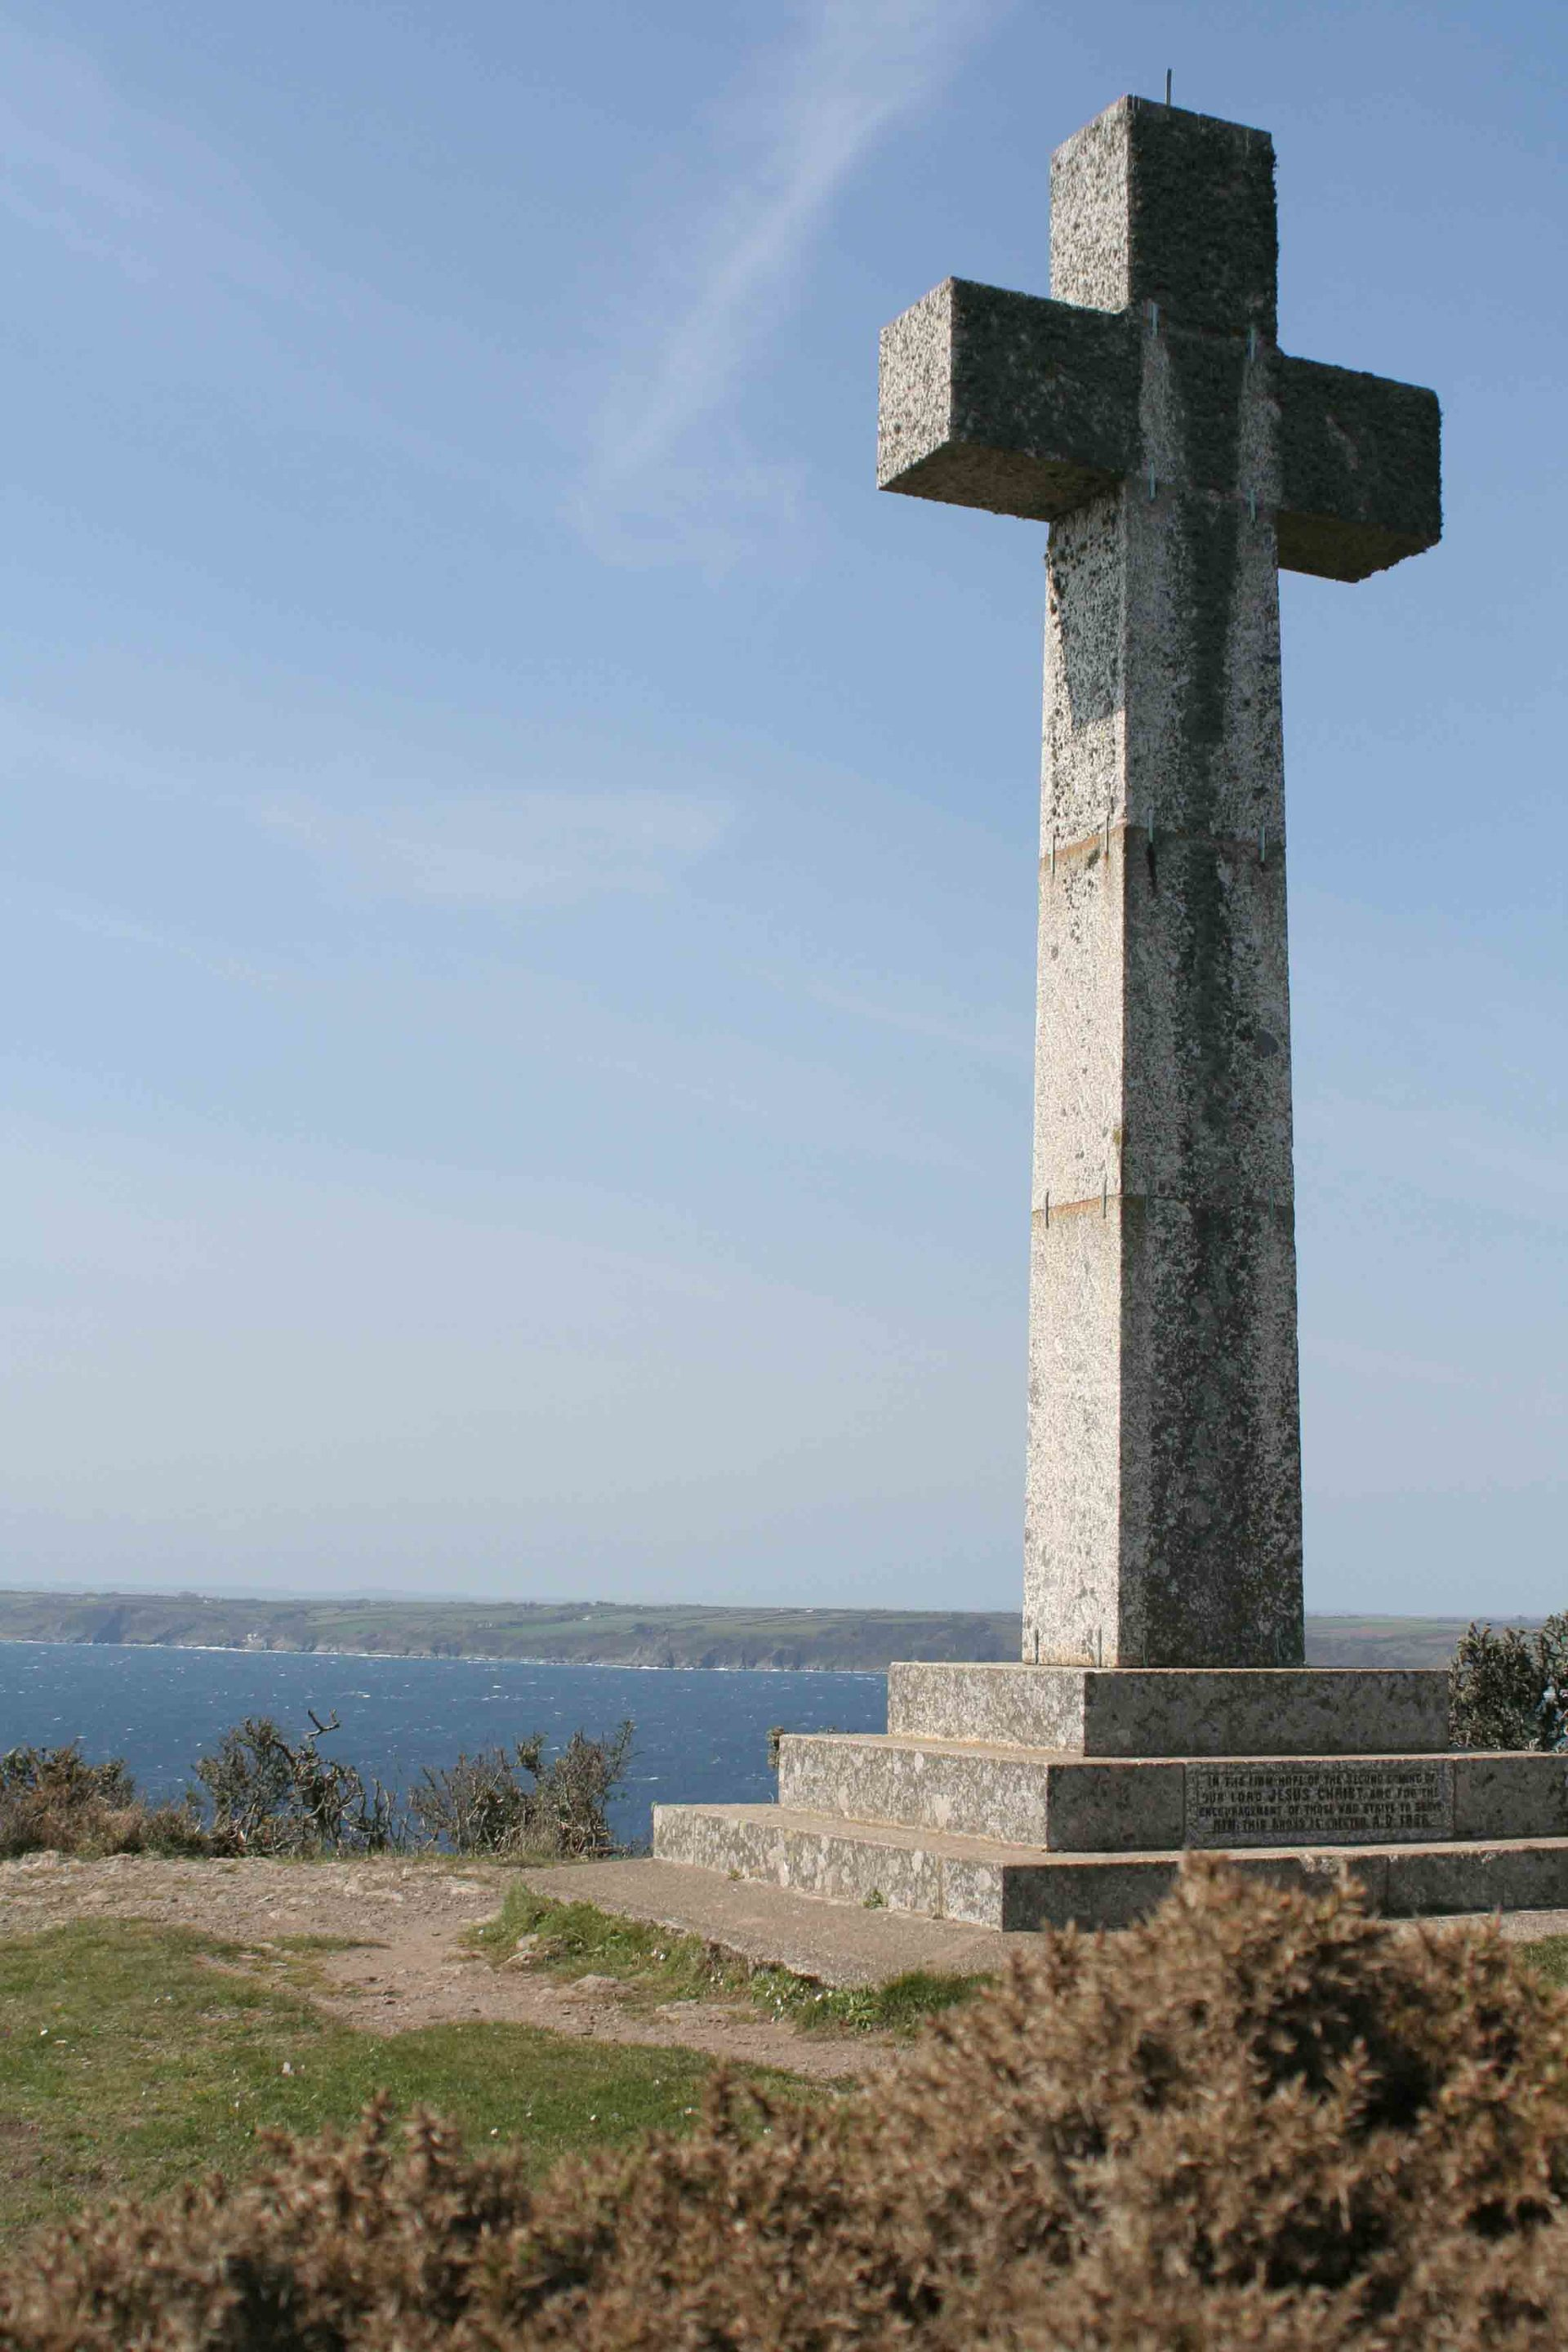 granite cross on Dodman Point erected in 1896 as navigational aid for seafarers L A Kent DI Treloar series Rogue Flamingo